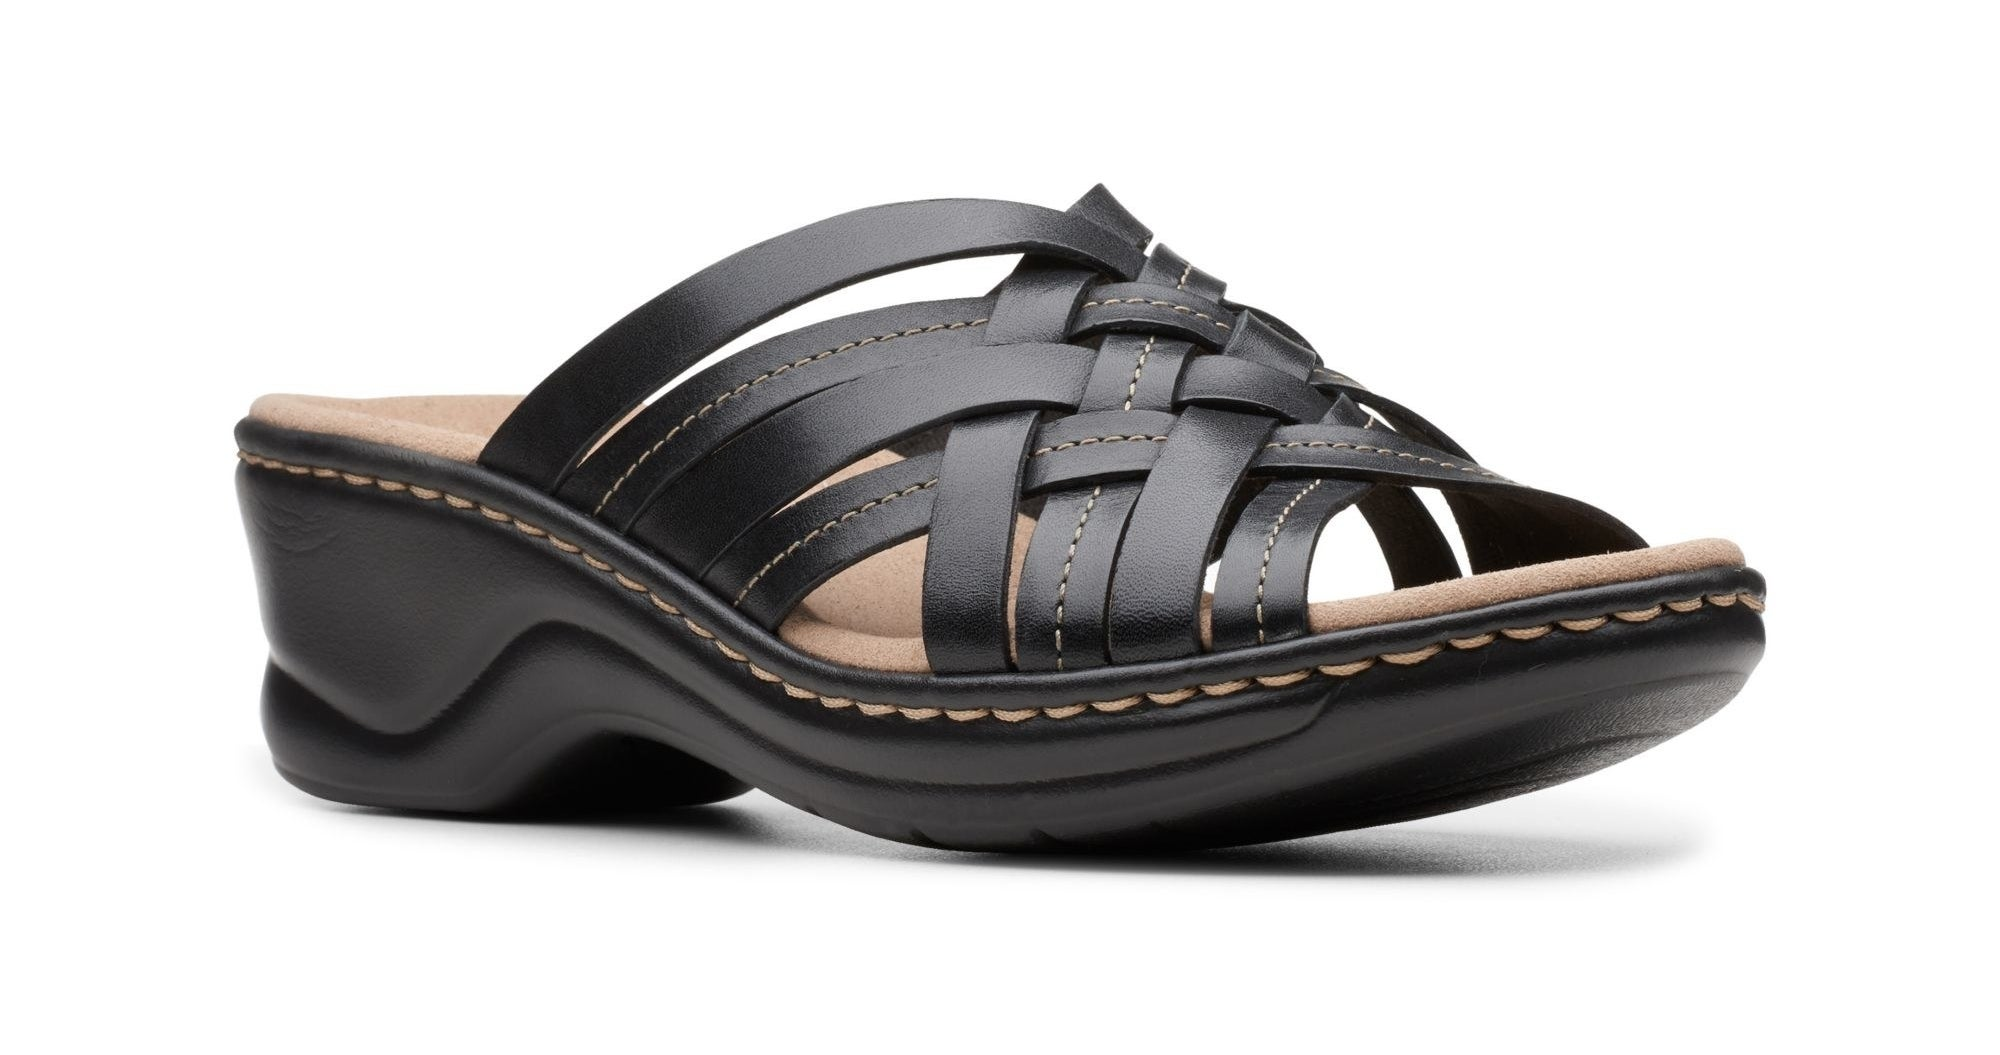 small heeled sandal with cushy beddy and woven front